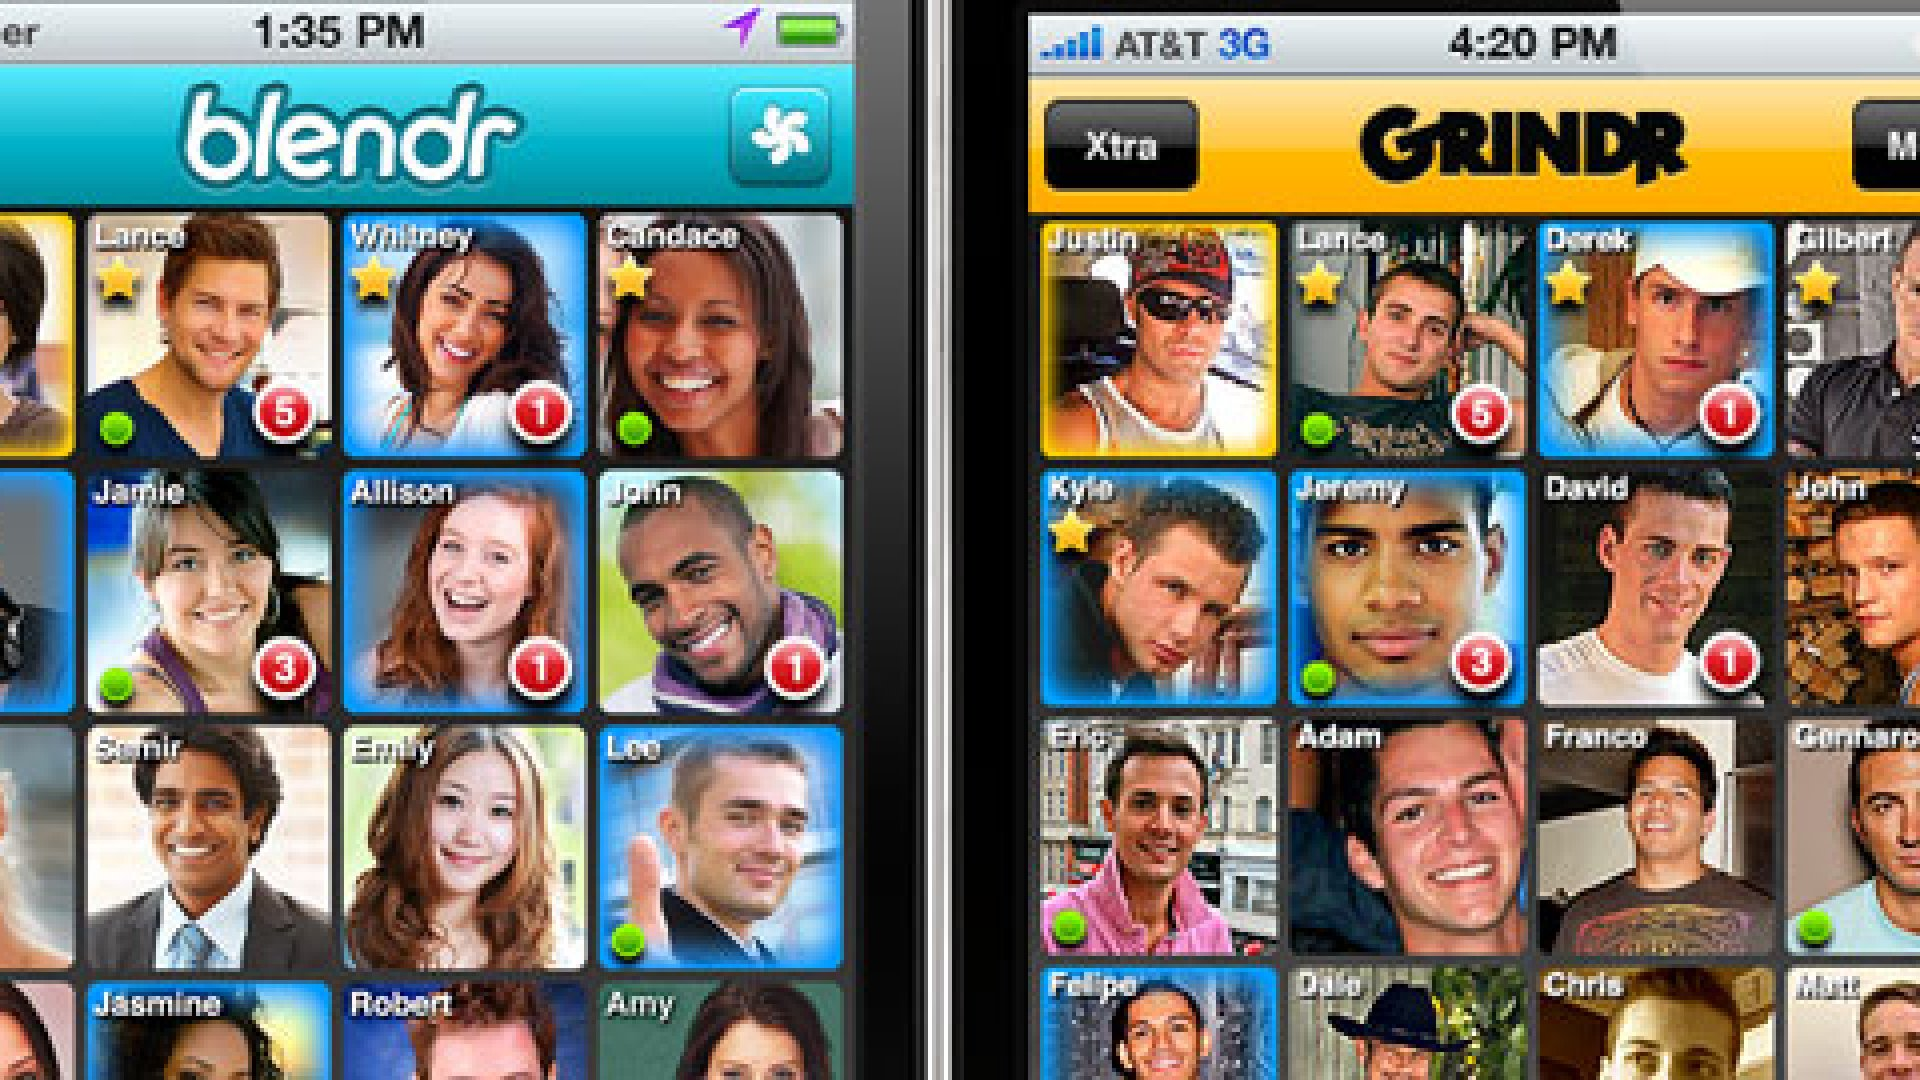 First there was Grindr, a gay social network. Then came Simkhai's mainstream attempt: Blendr.